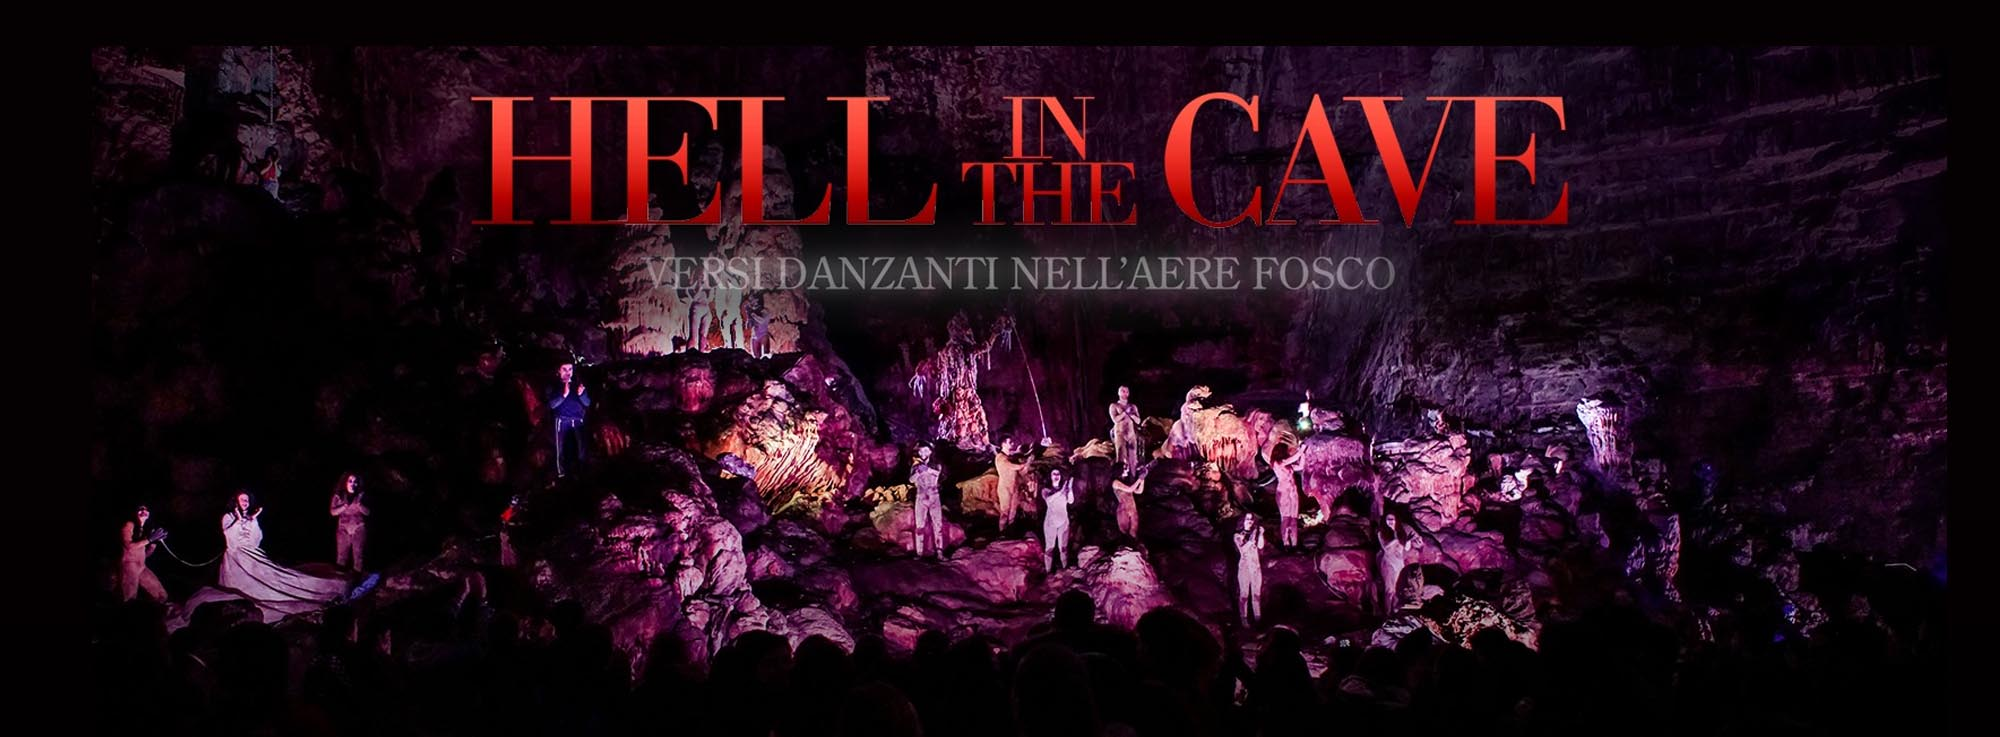 Castellana Grotte: Hell in the Cave